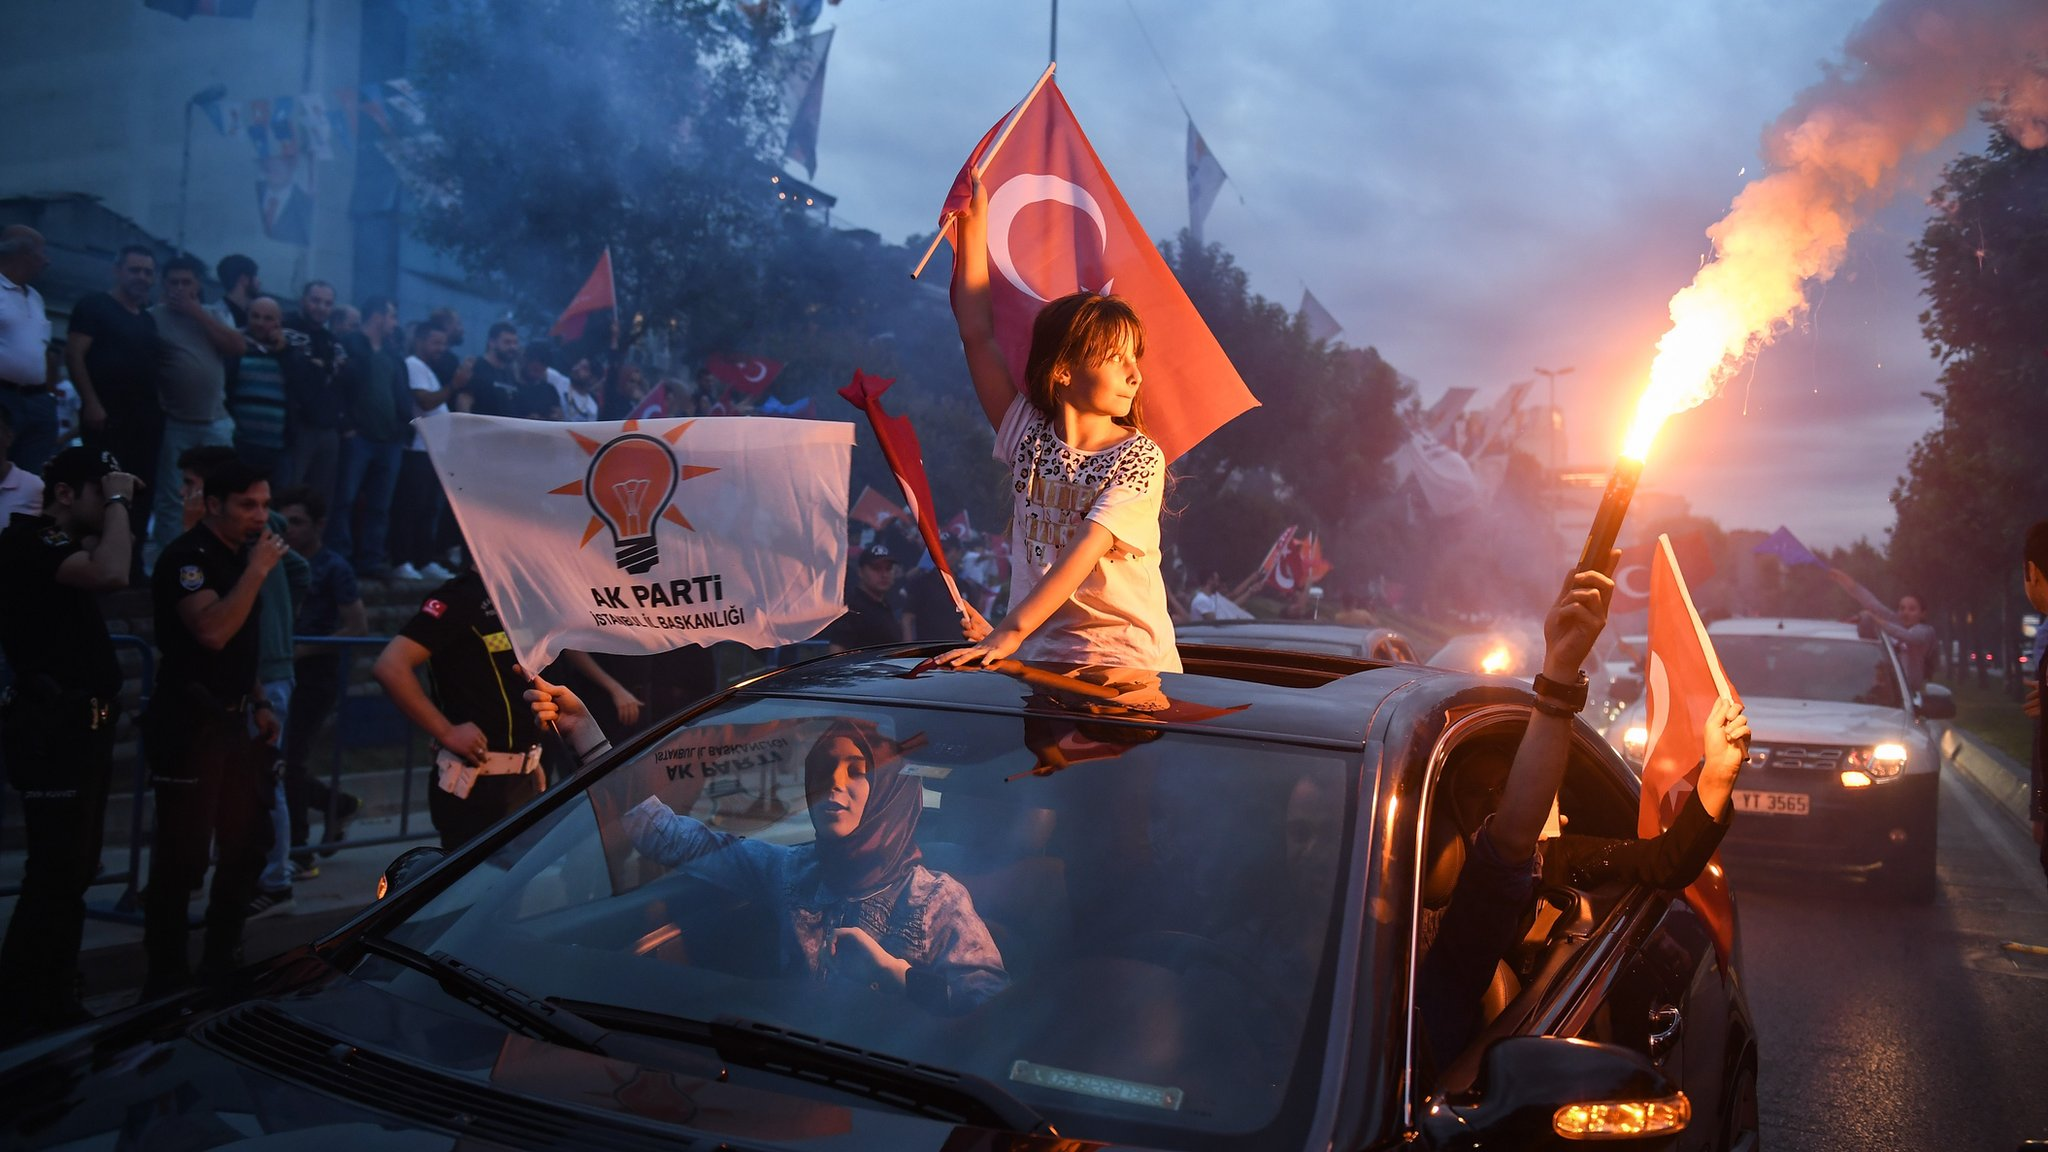 Turkey election: Erdogan wins re-election as president